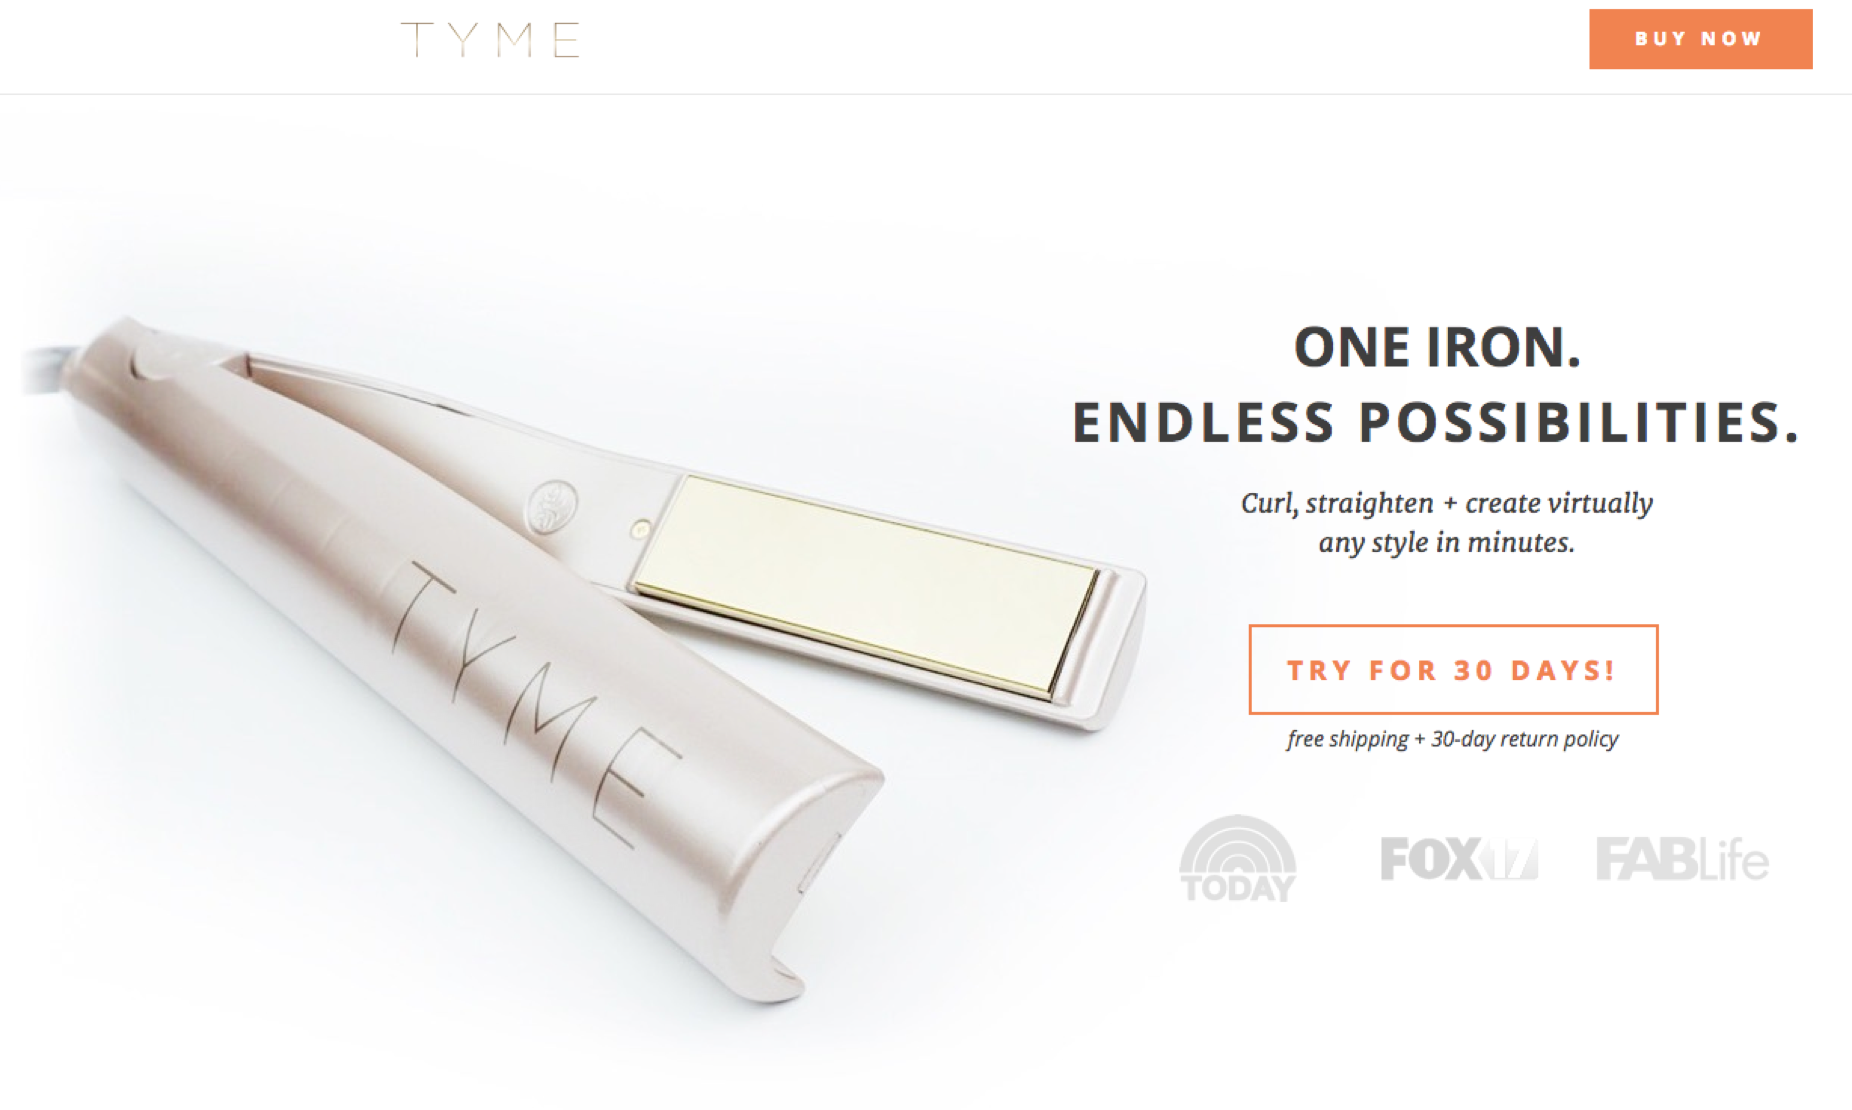 Screenshot of Tyme's Landing Page showing a large, clean photo of their Iron